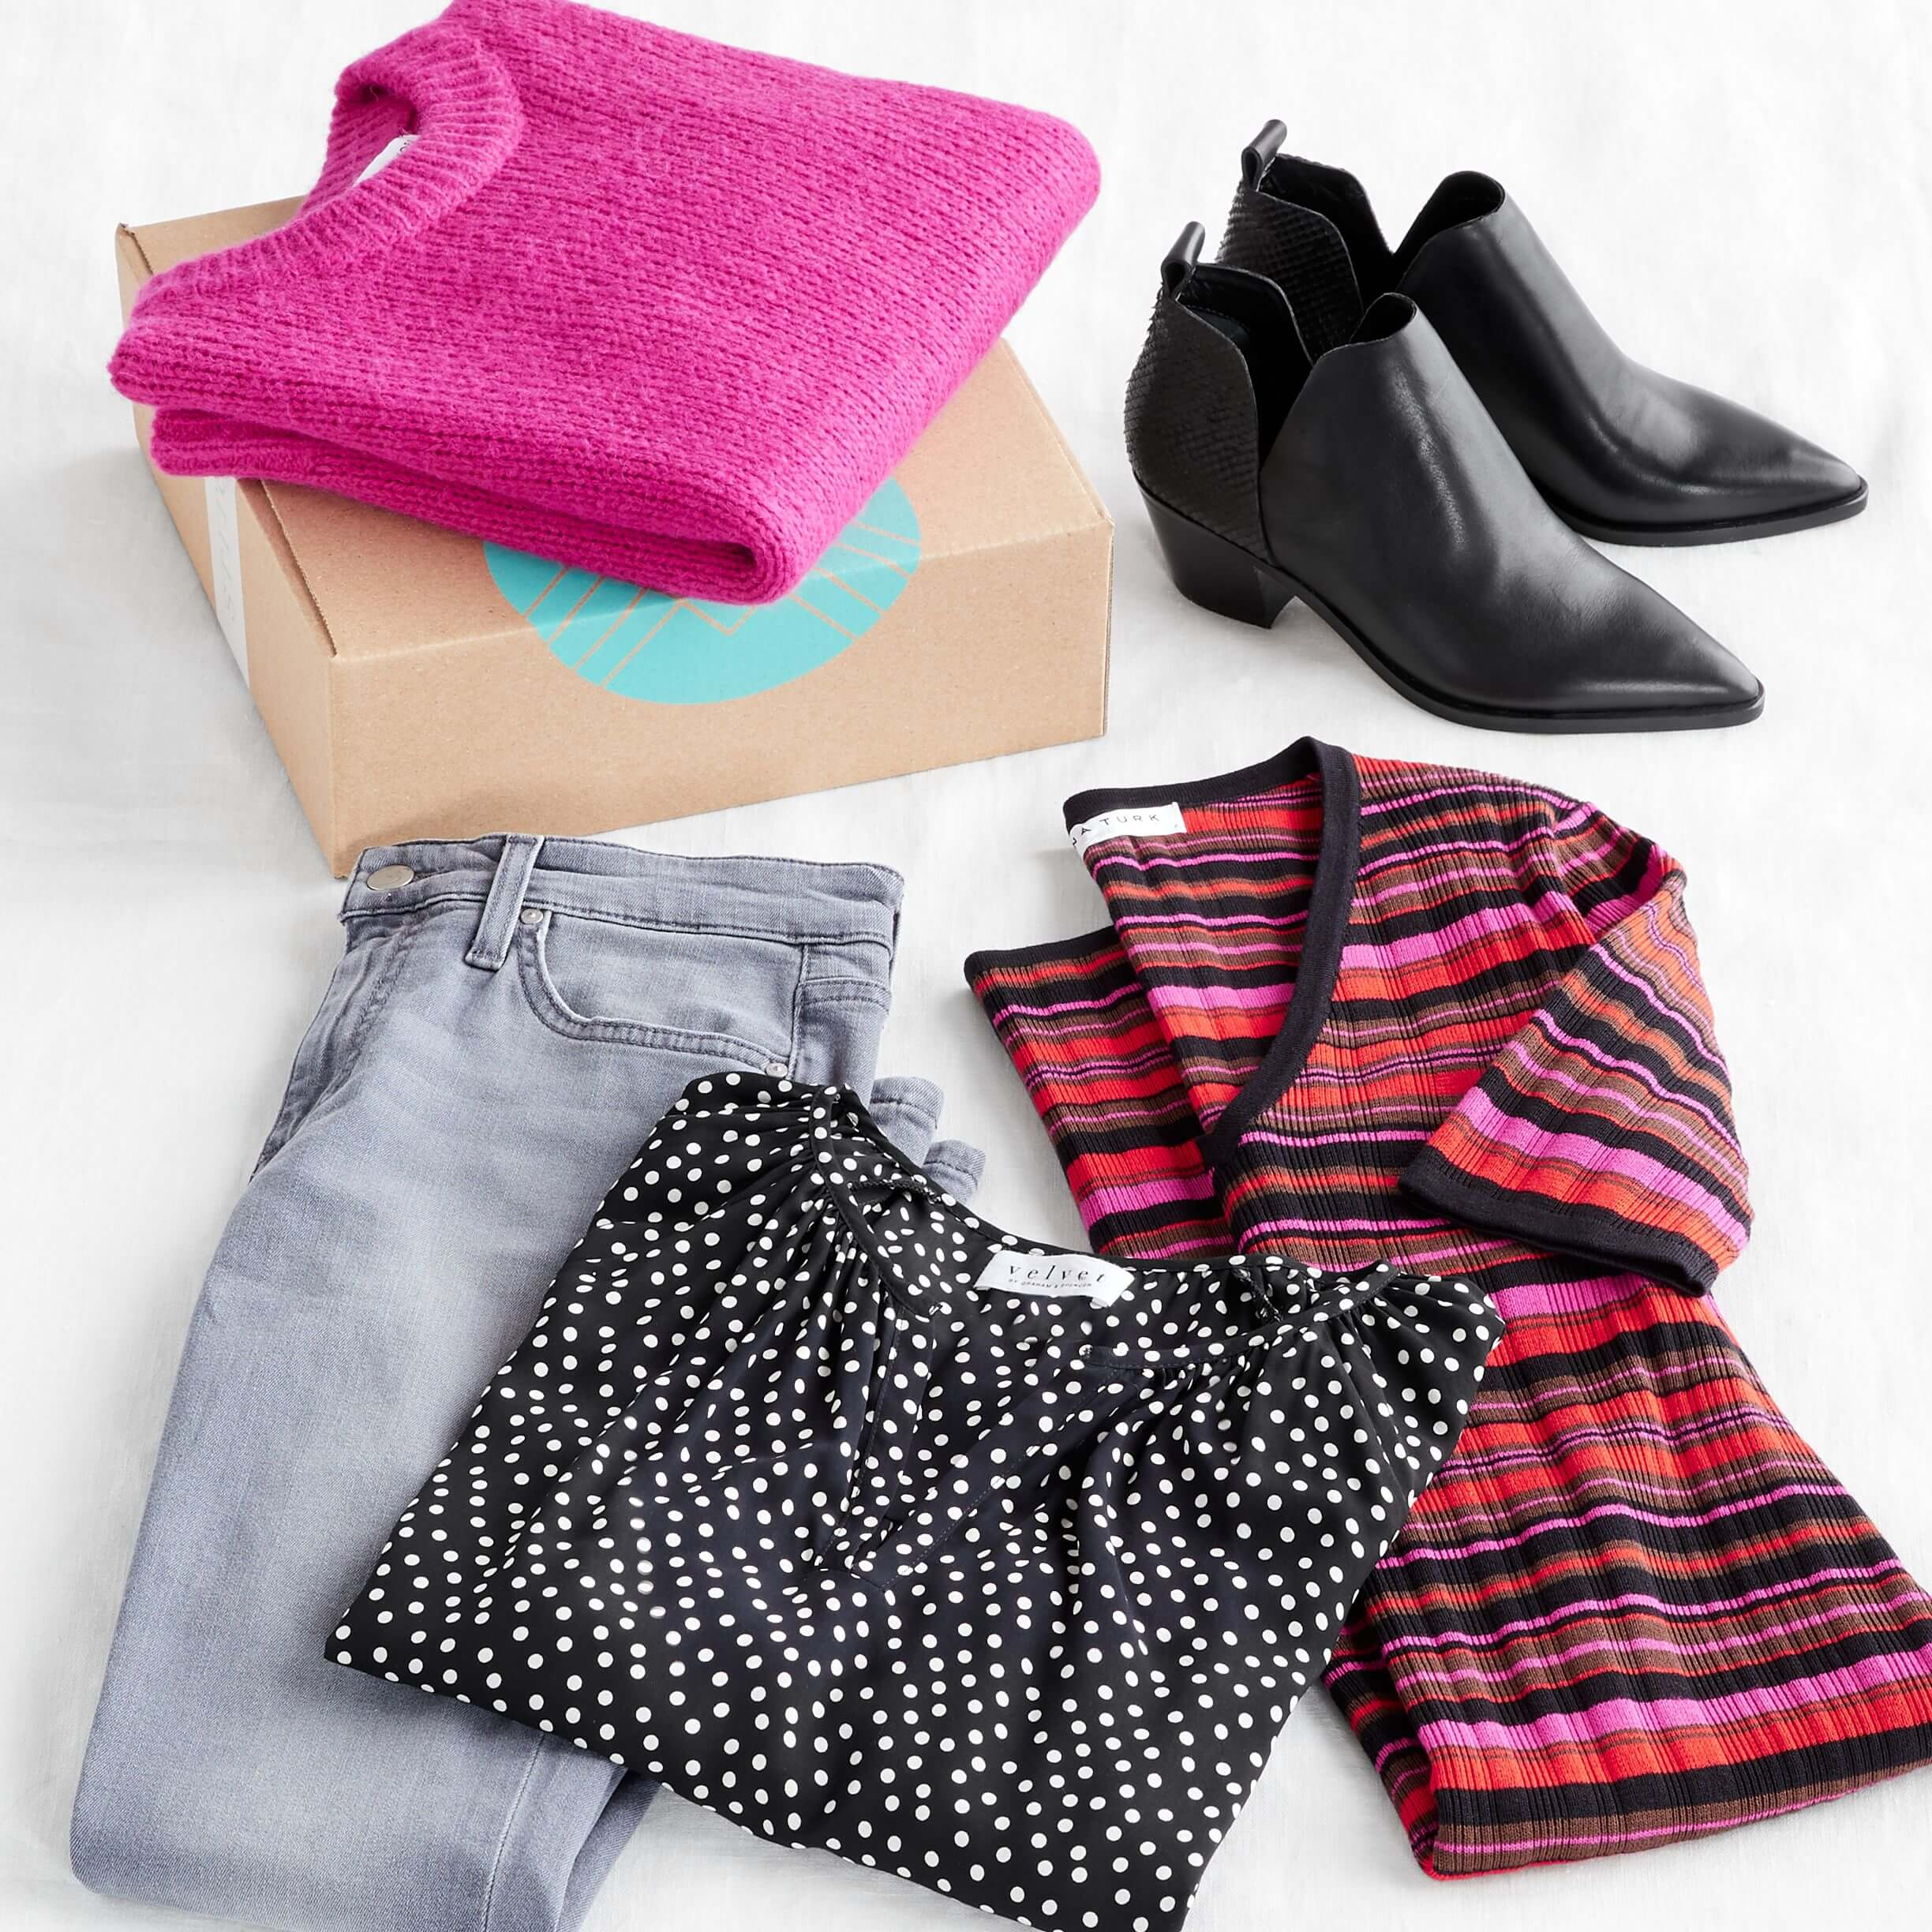 Stitch Fix Women's outfit laydown featuring a bright pink crew neck sweater on a Stitch Fix delivery box, next to black booties, pink striped sweater dress, black polka dot top and grey jeans.